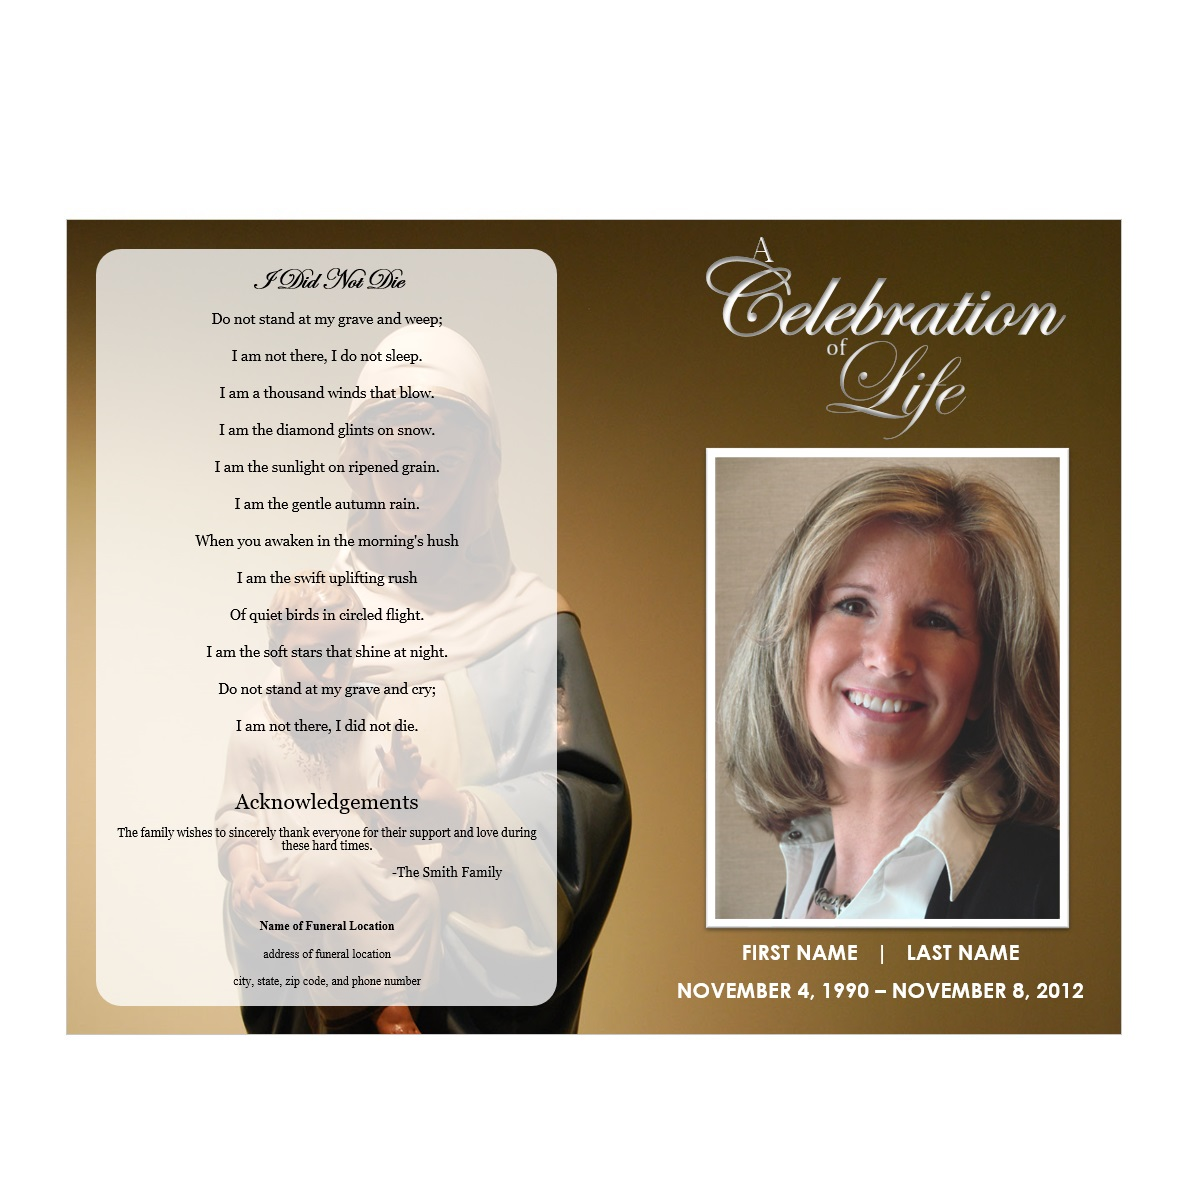 Virgin Mary Funeral Program Funeral Pamphlets - Celebration of life template